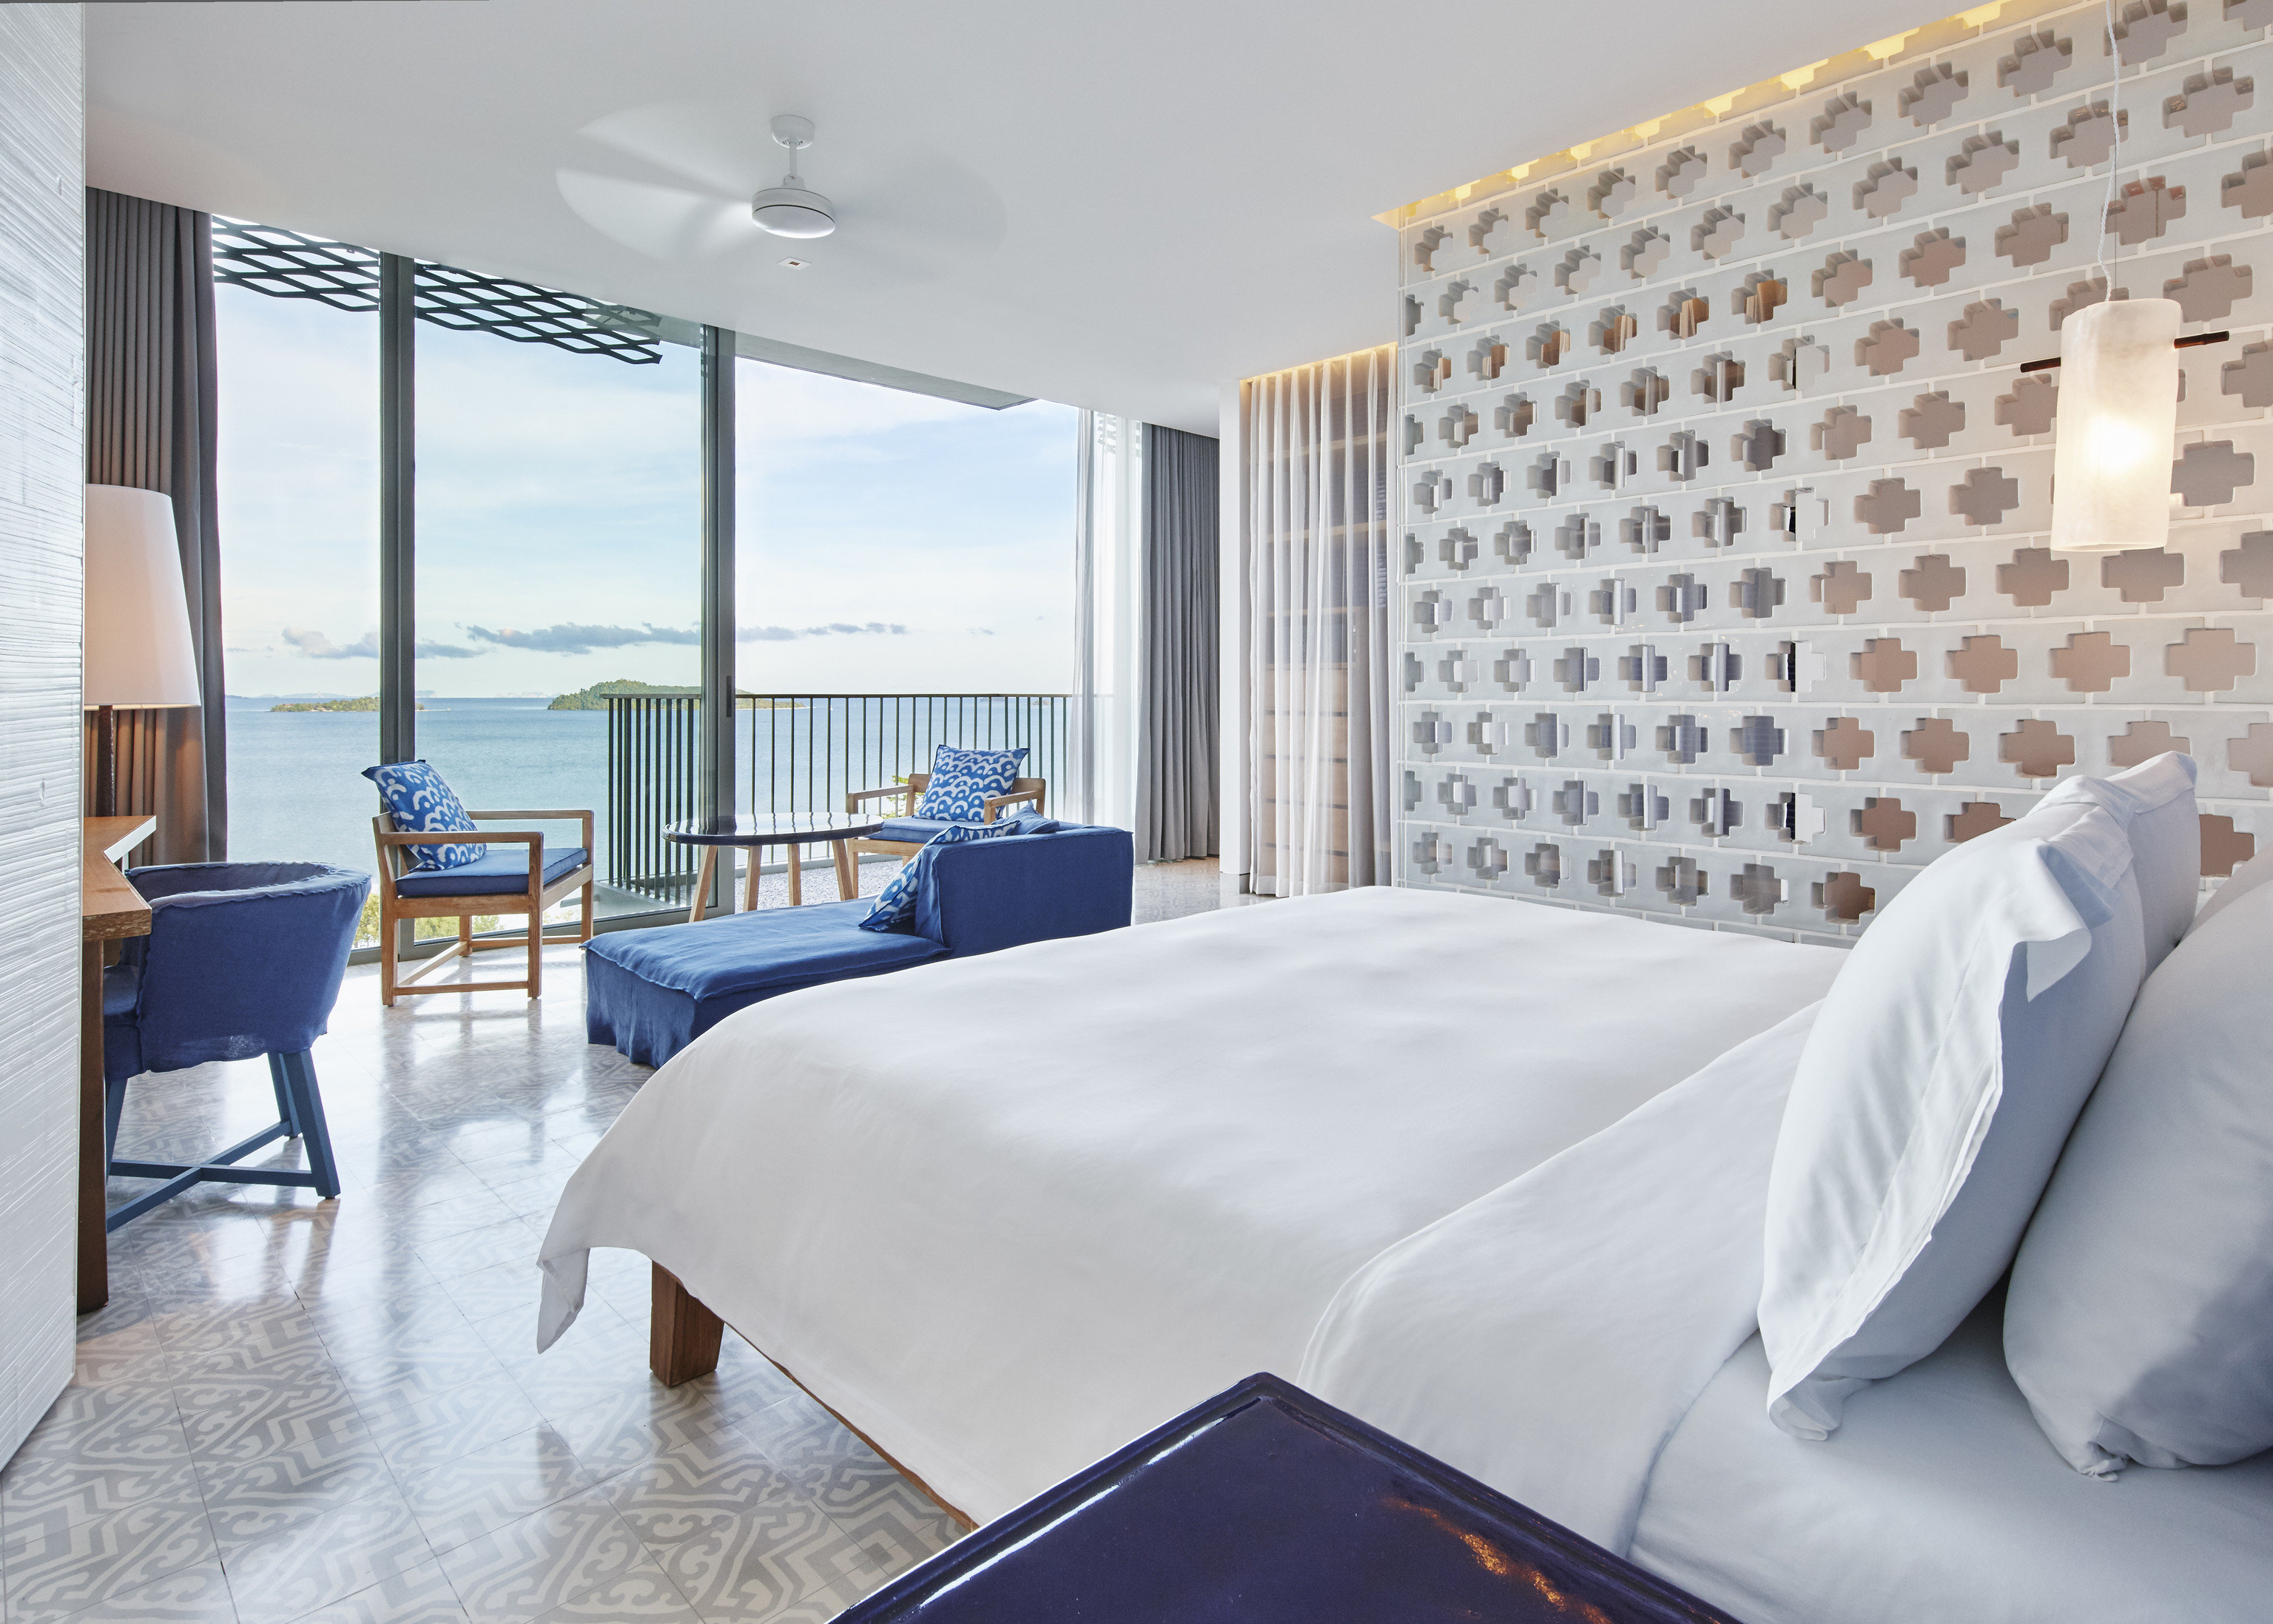 Beach Hotels Phuket Thailand indoor floor bed room Suite window hotel wall interior design real estate Bedroom penthouse apartment apartment estate comfort ceiling interior designer bed frame boutique hotel furniture